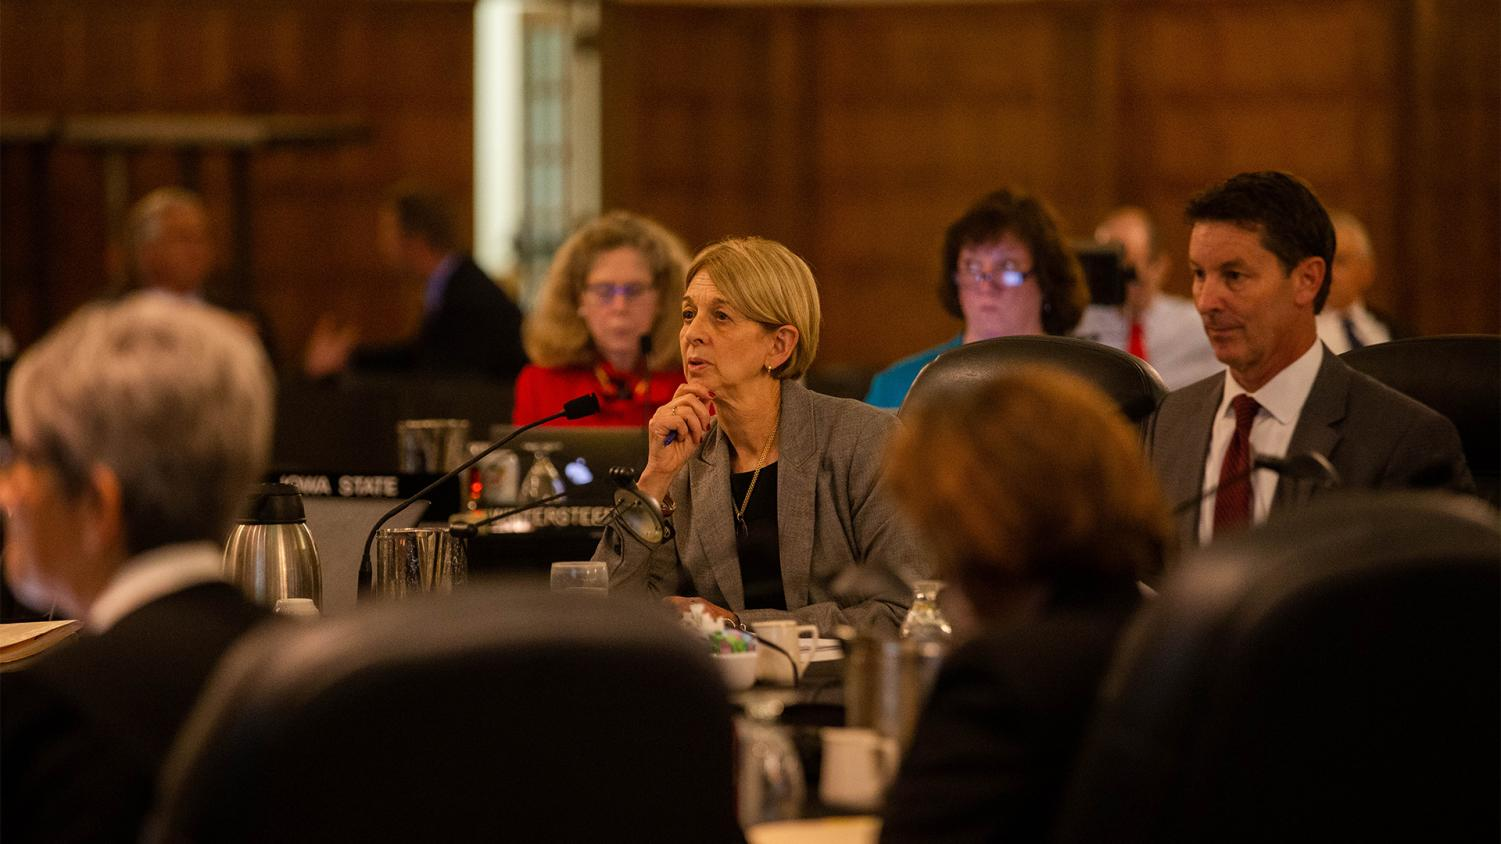 UI interim Provost Sue Curry speaks to the state Board of Regents during the Academic Affairs Committee meeting in the IMU on Wednesday, Sept. 12, 2018.